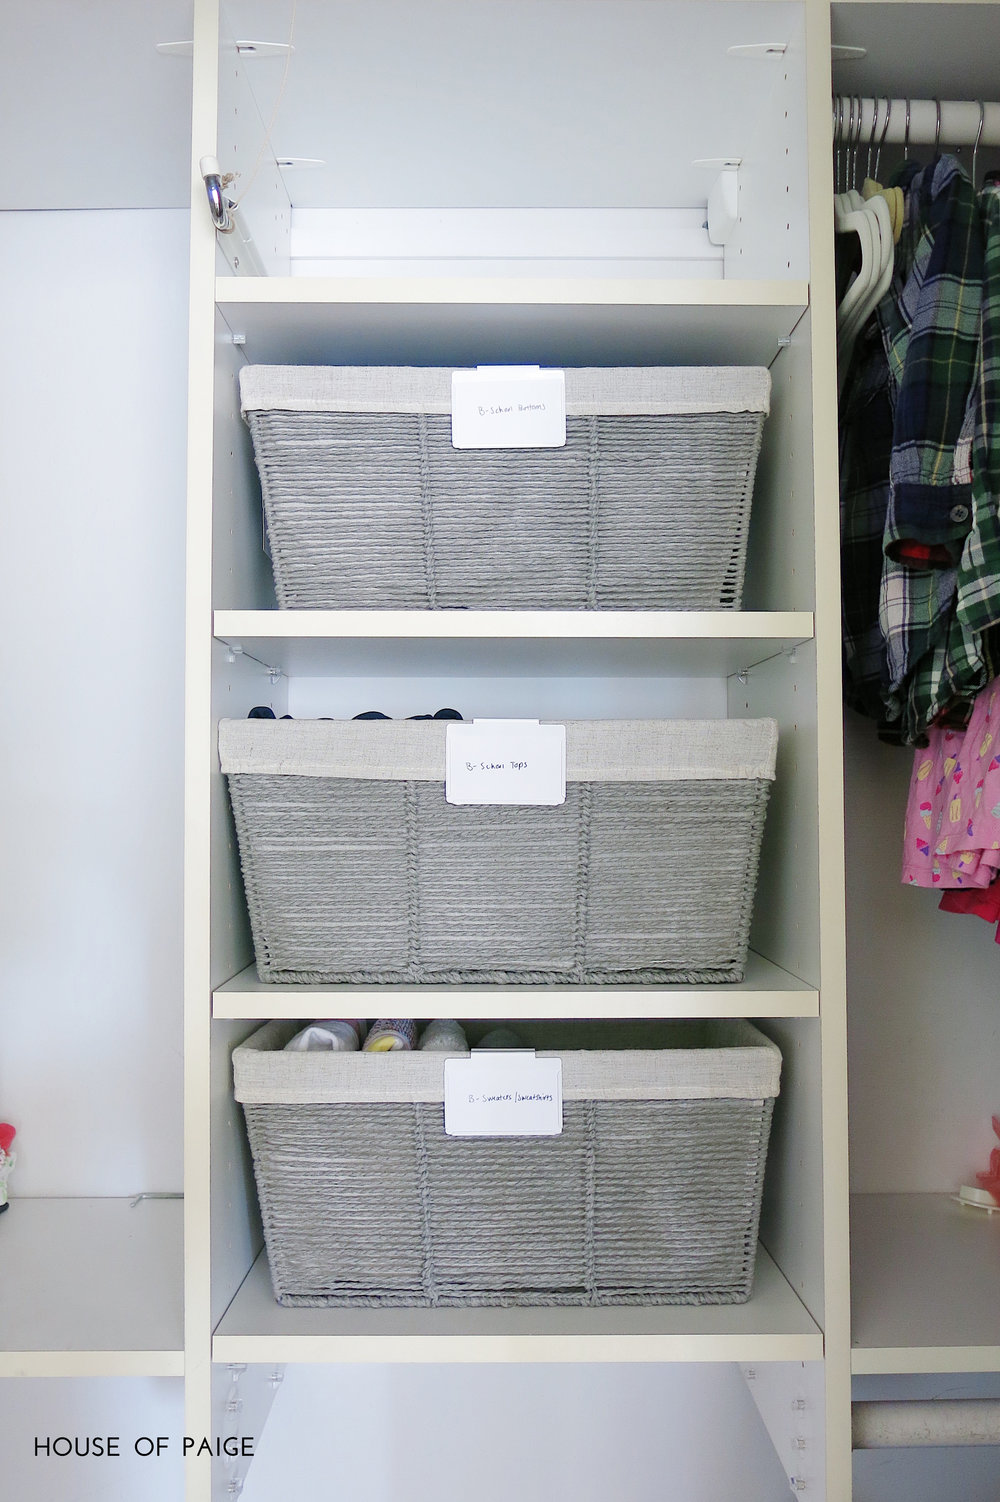 5 organization products I swear by_house of paige 2.jpg